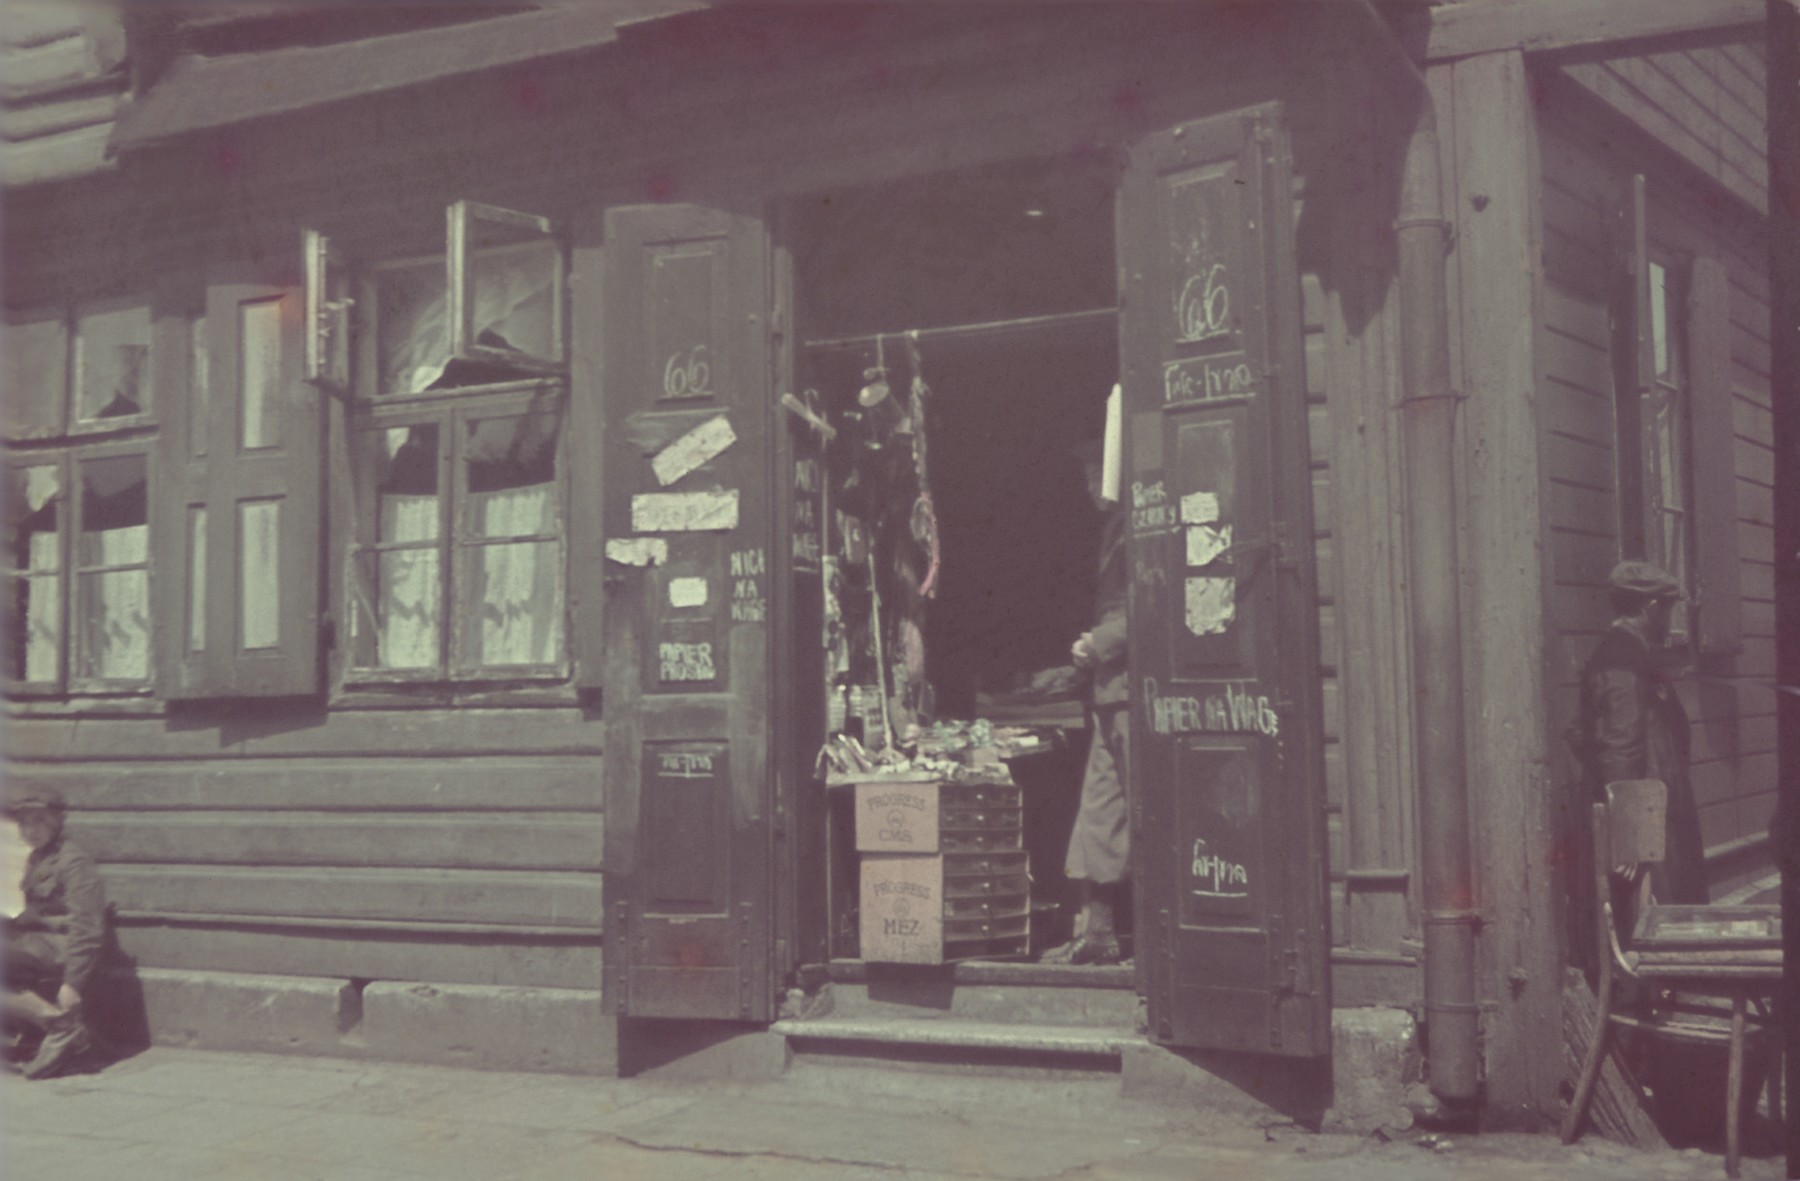 View of a store in the Lodz ghetto as seen through an open doorway.